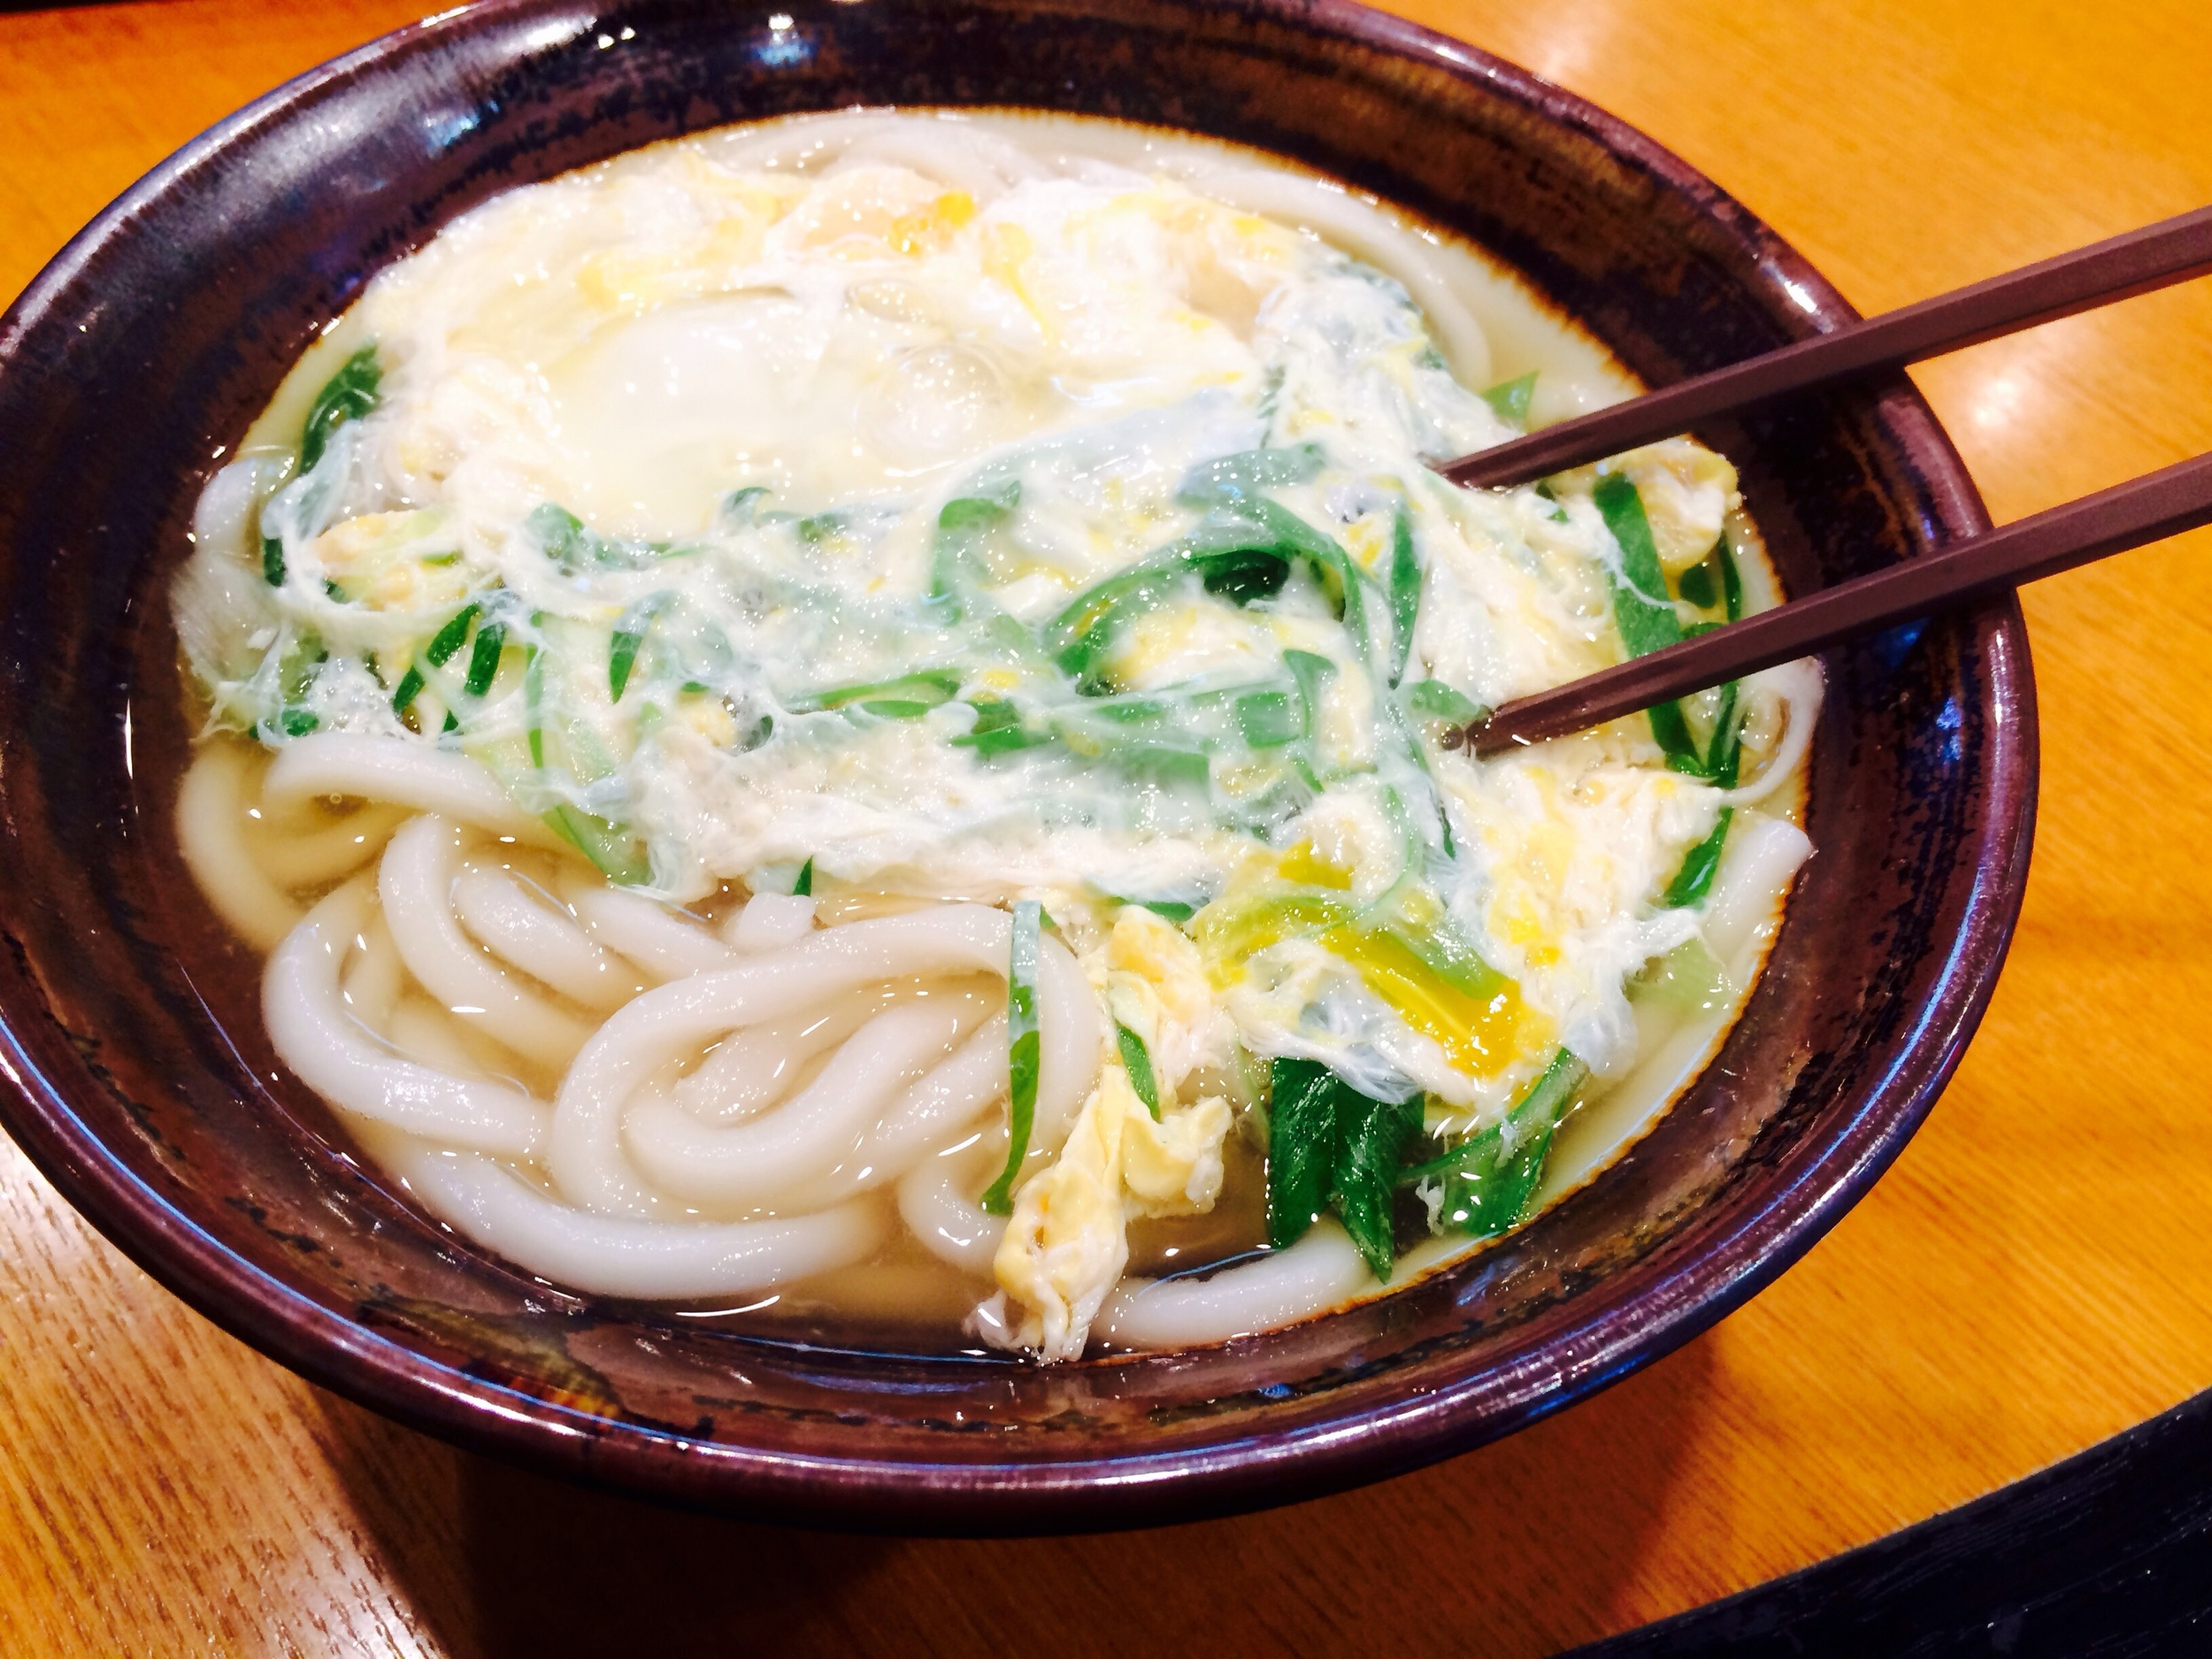 Udon noodles in beef broth with green onions and poached egg.